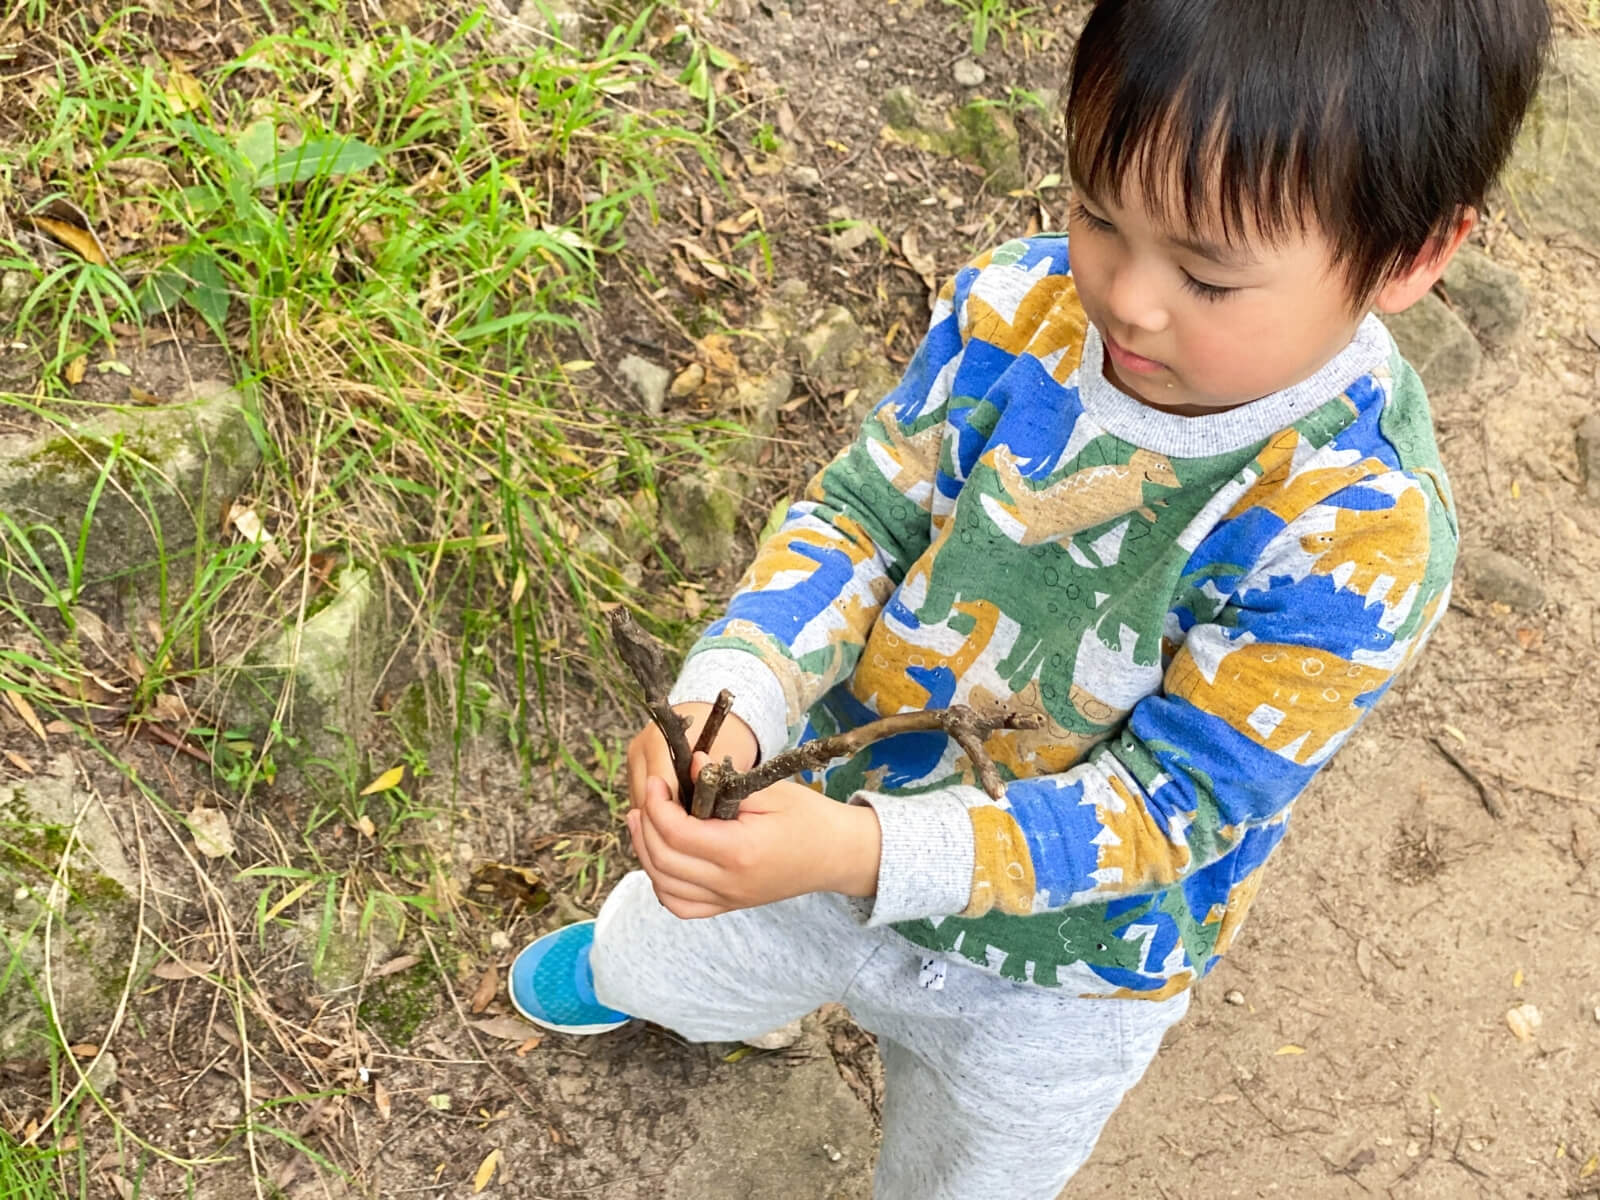 collect sticks and natural resources